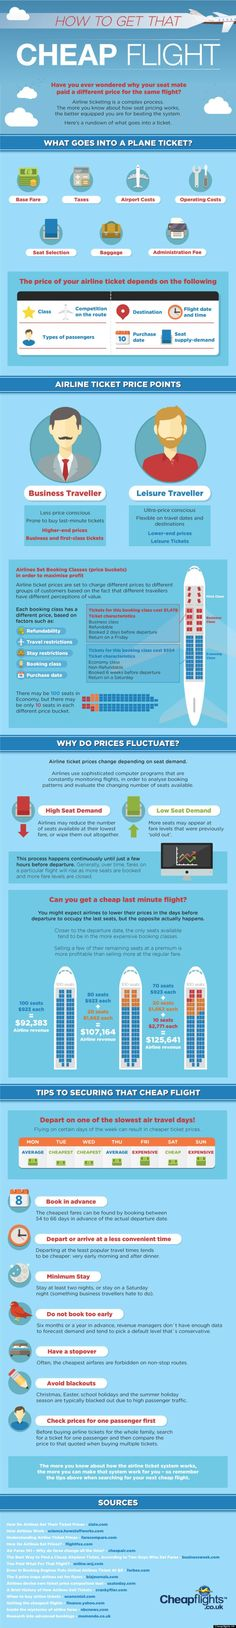 Cheap Flights 101: How To Snag An Inexpensive Plane Ticket (INFOGRAPHIC)